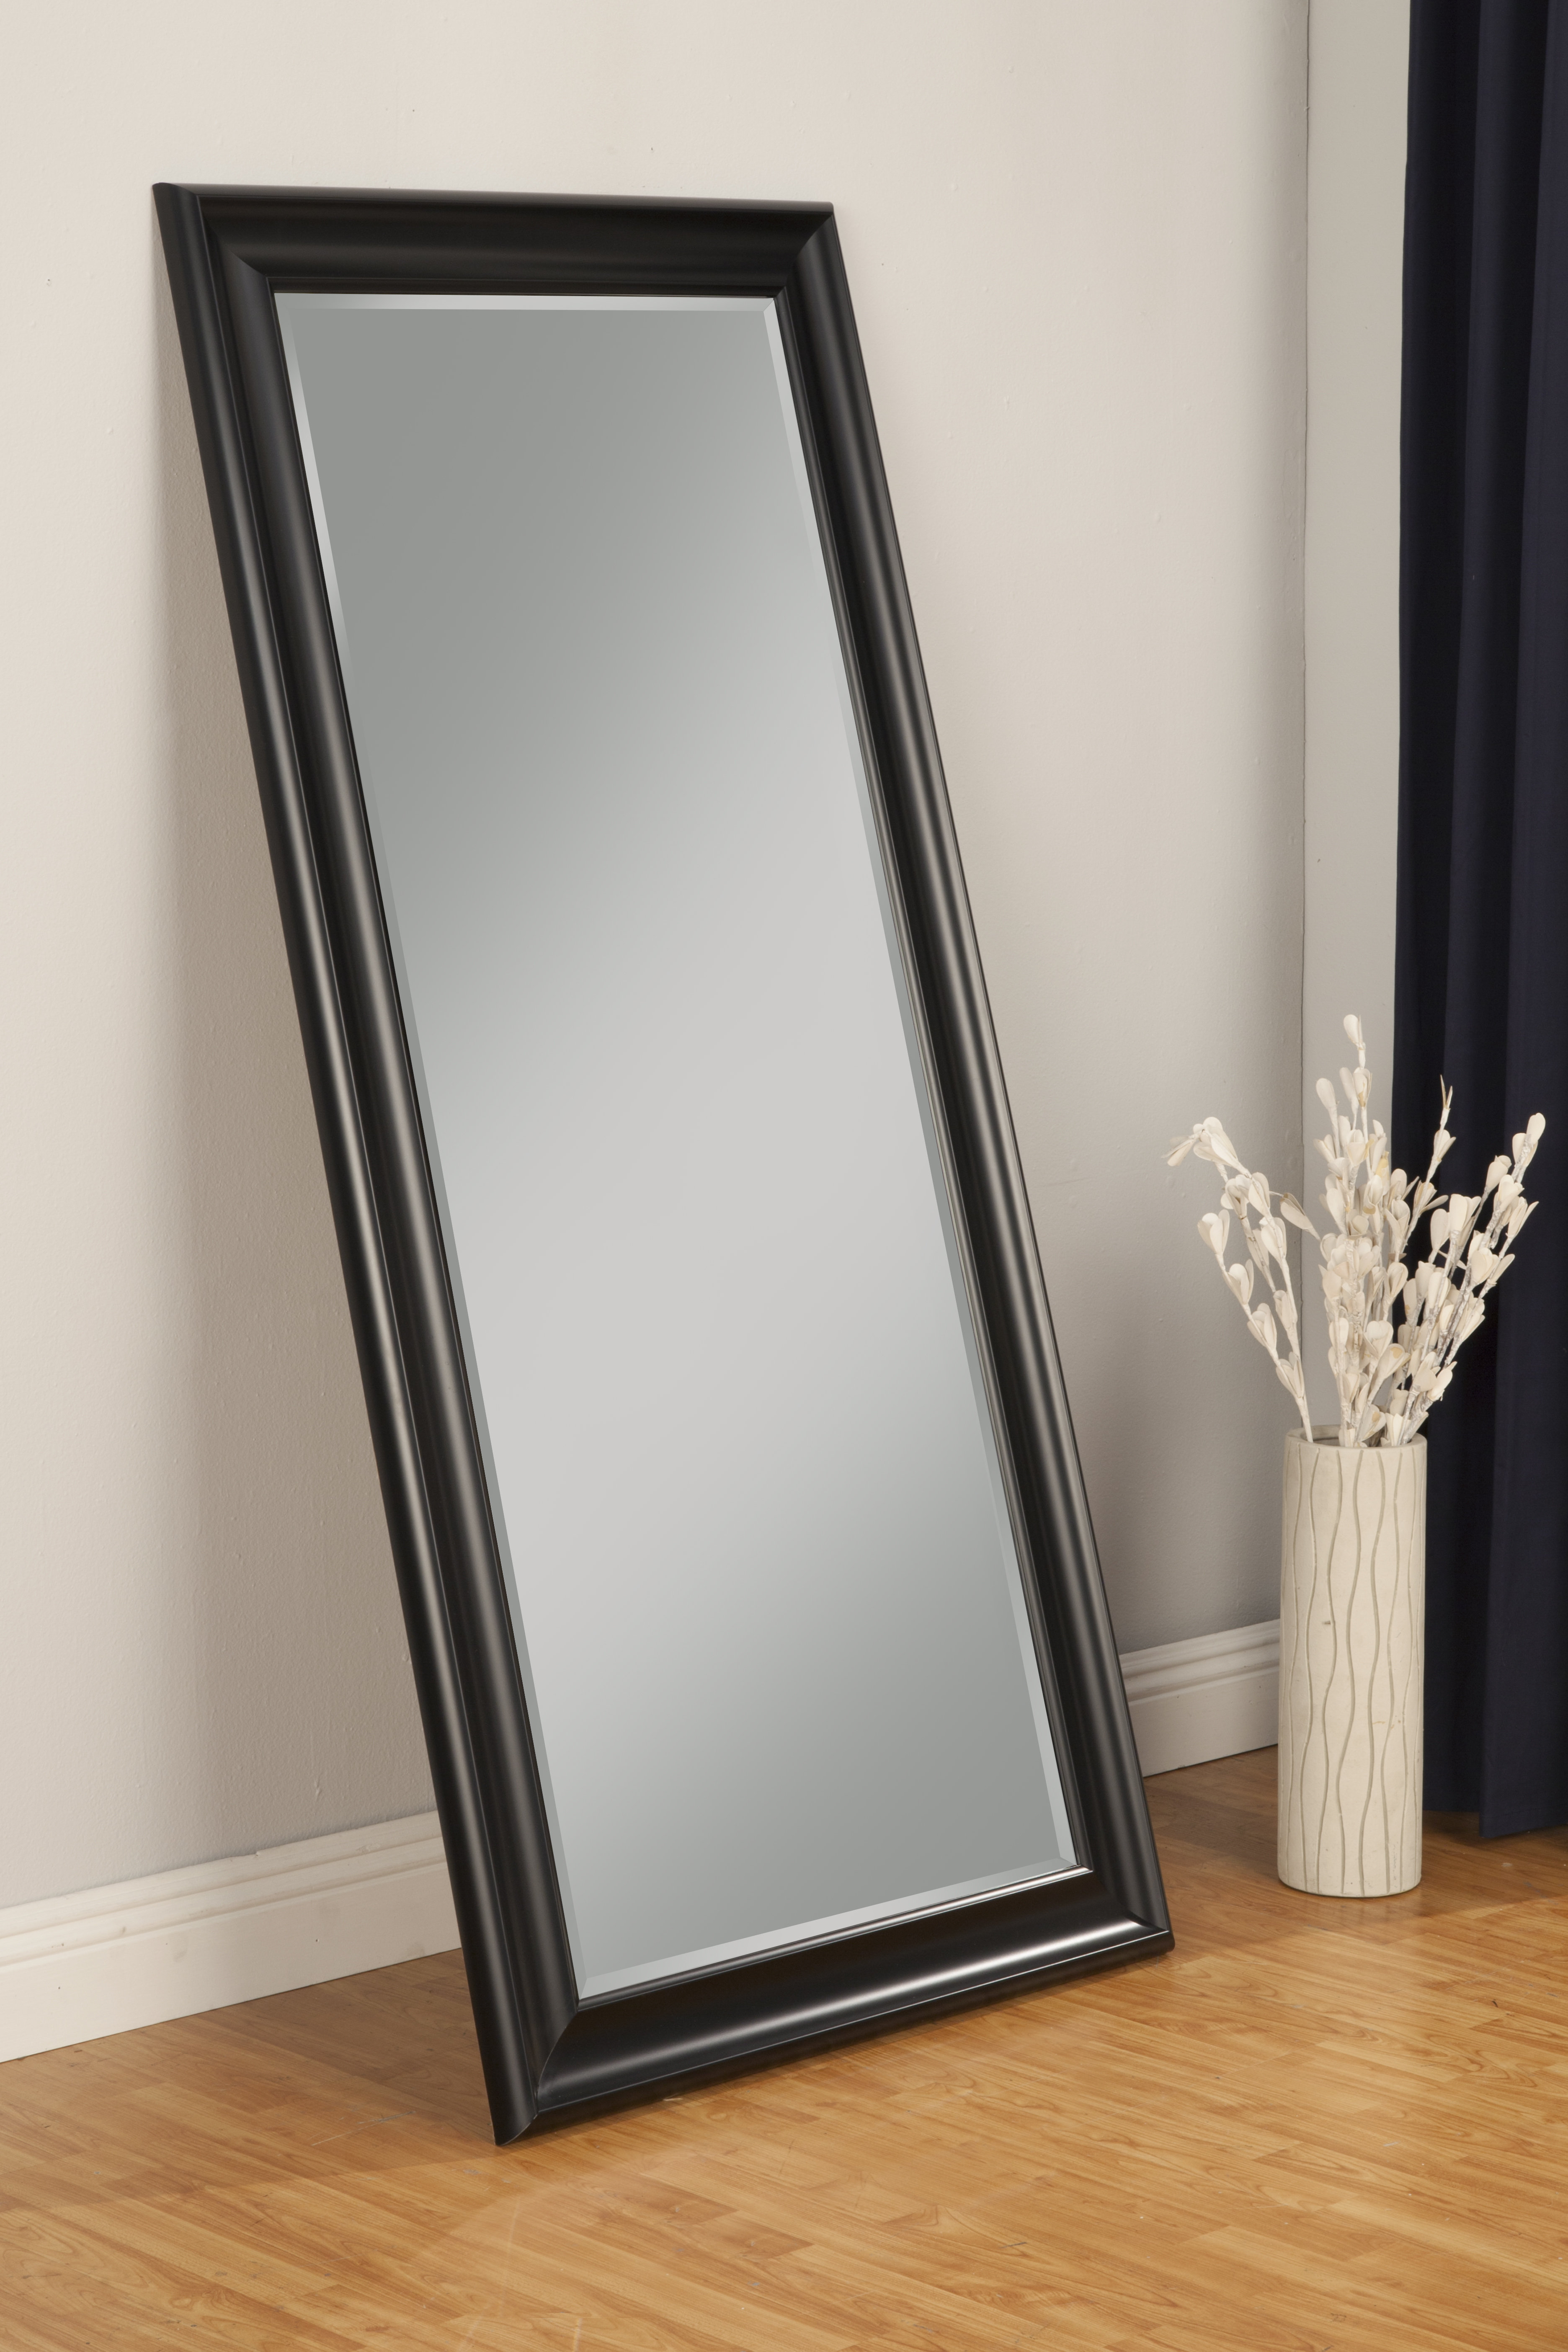 Farmhouse & Rustic Bathroom Mirrors | Birch Lane Intended For Bracelet Traditional Accent Mirrors (View 9 of 20)